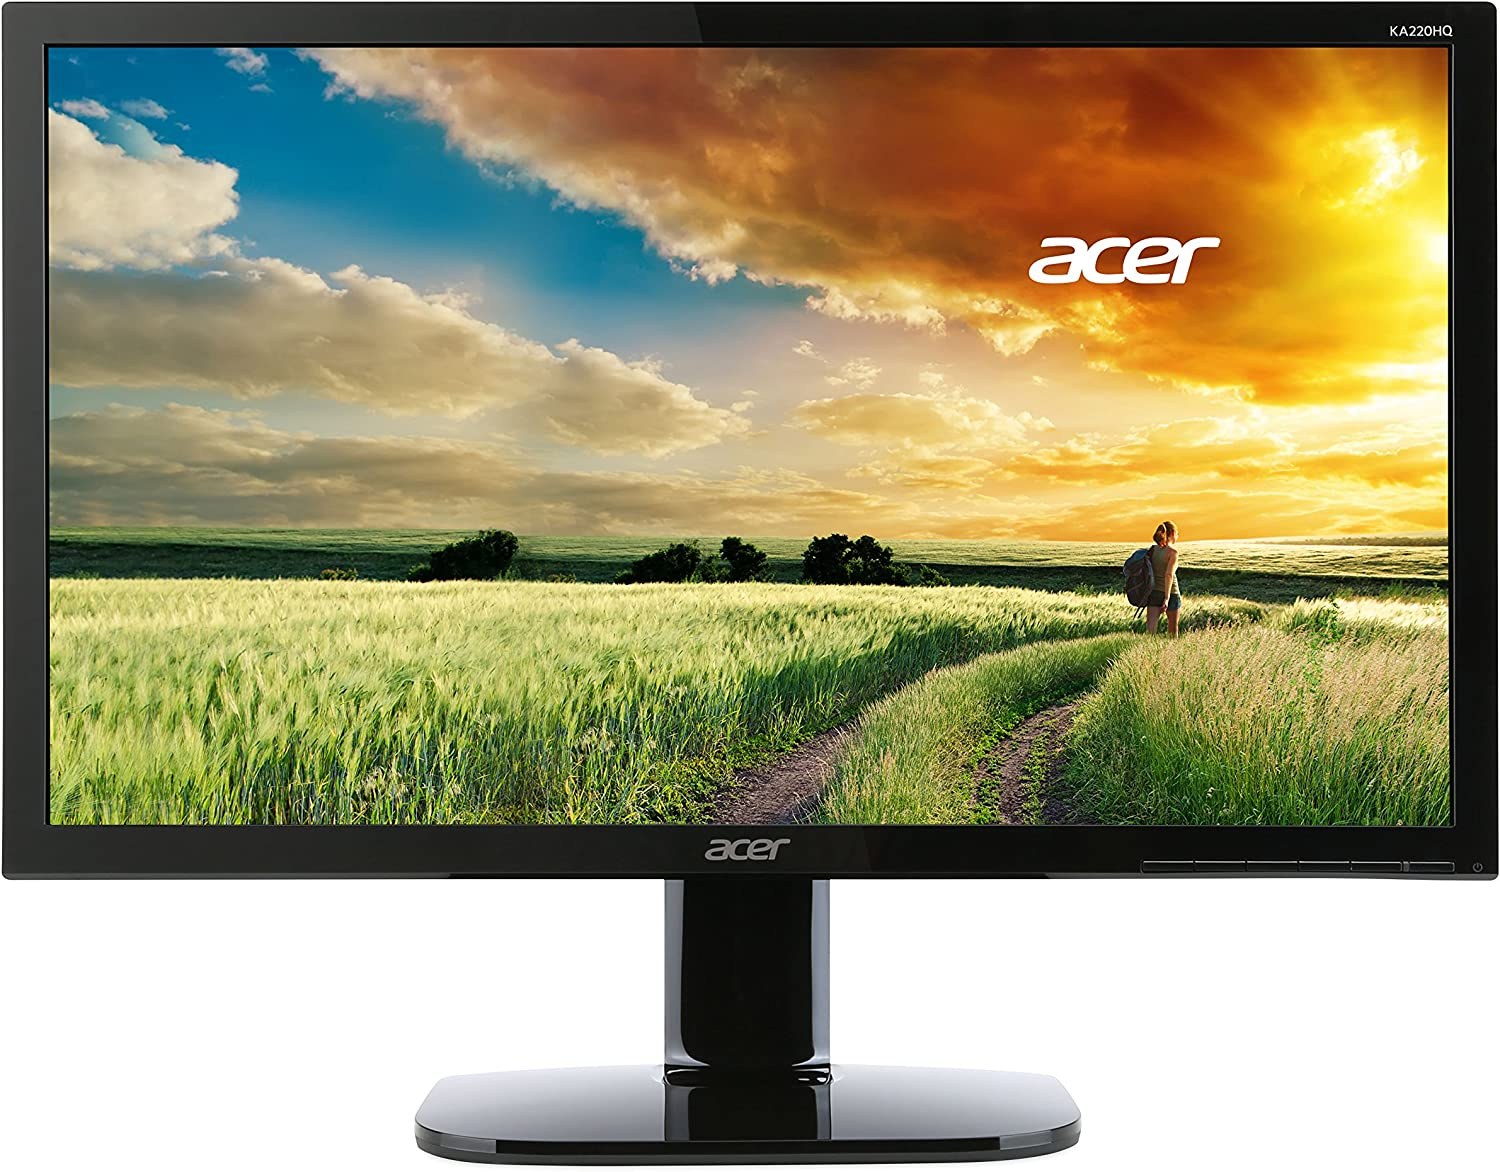 "Acer KA220HQ bi 22"" (21.5"" viewable) Full HD (1920 x 1080) TN Monitor (HDMI & VGA port),Black"